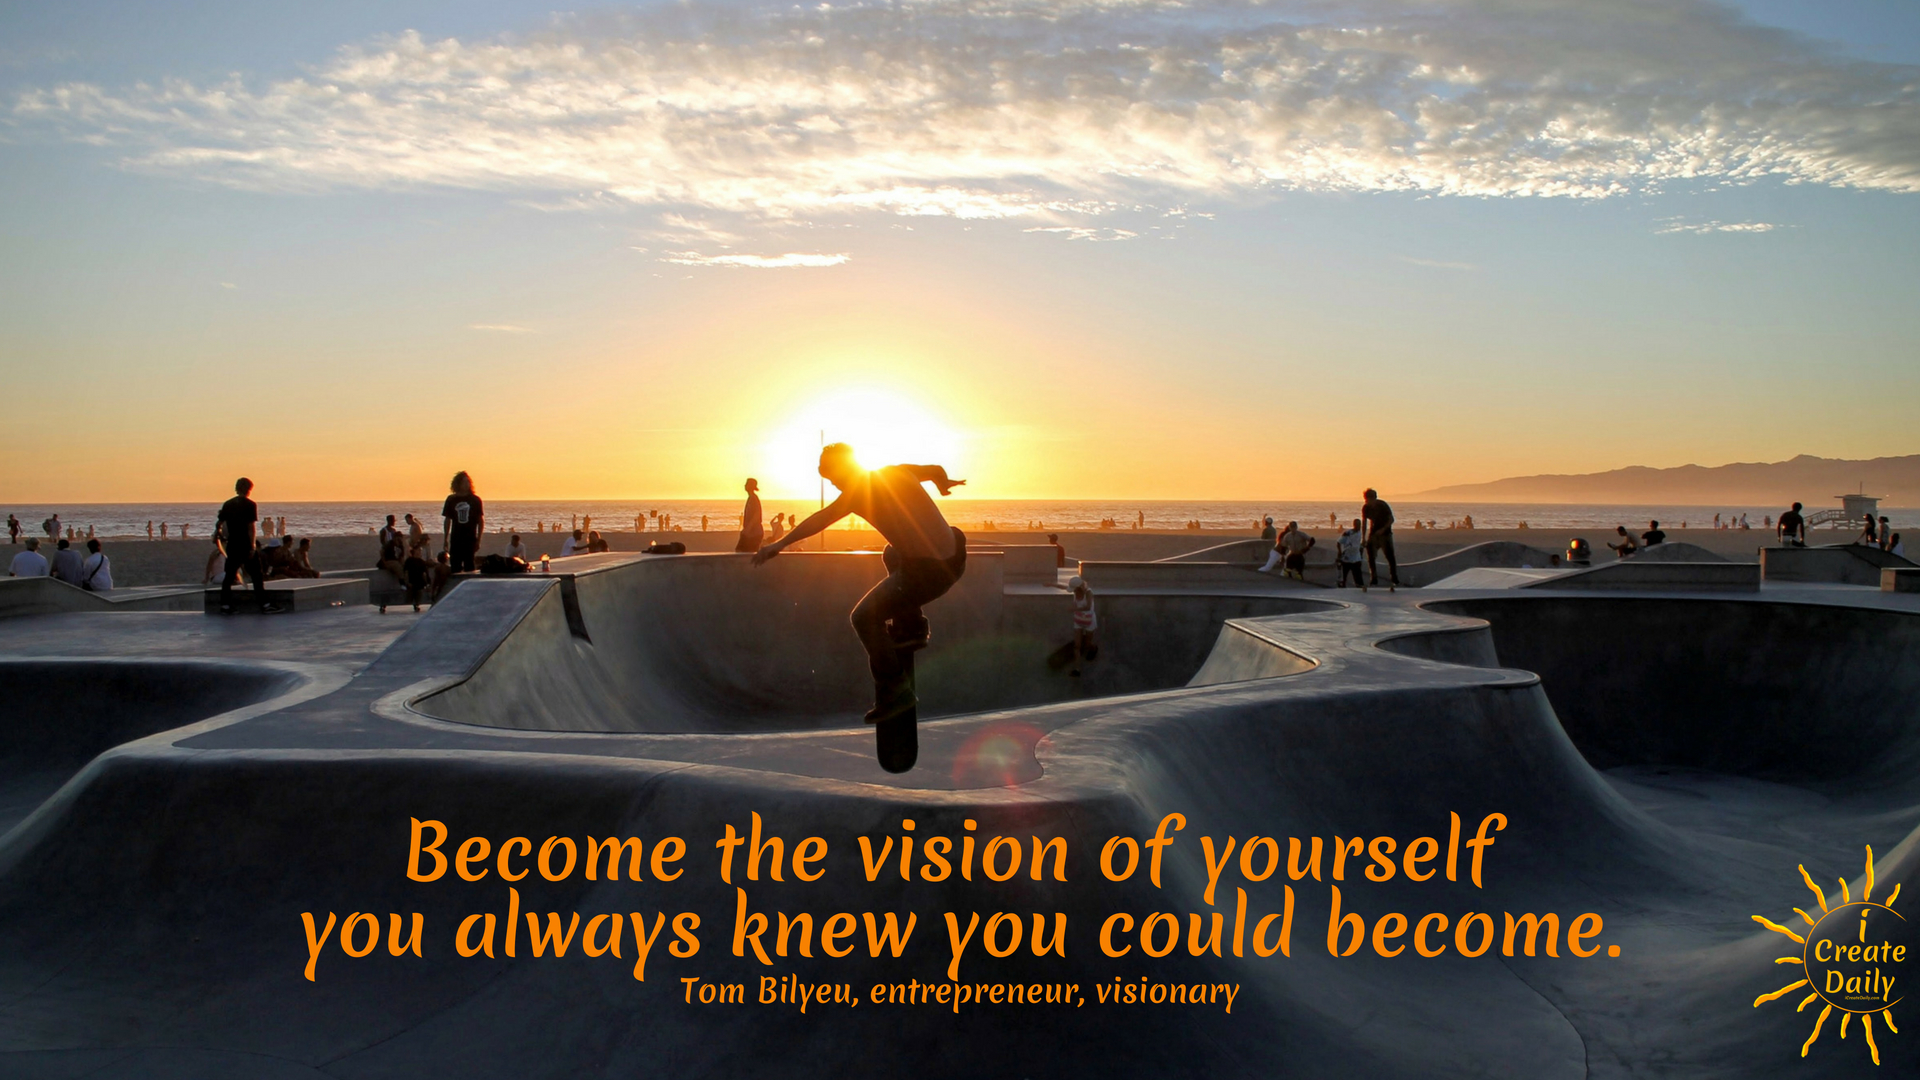 Become the vision of yourself you always knew you could become. ~Tom Bilyeu, entrepreneur, visionary #quotes #quest #vision